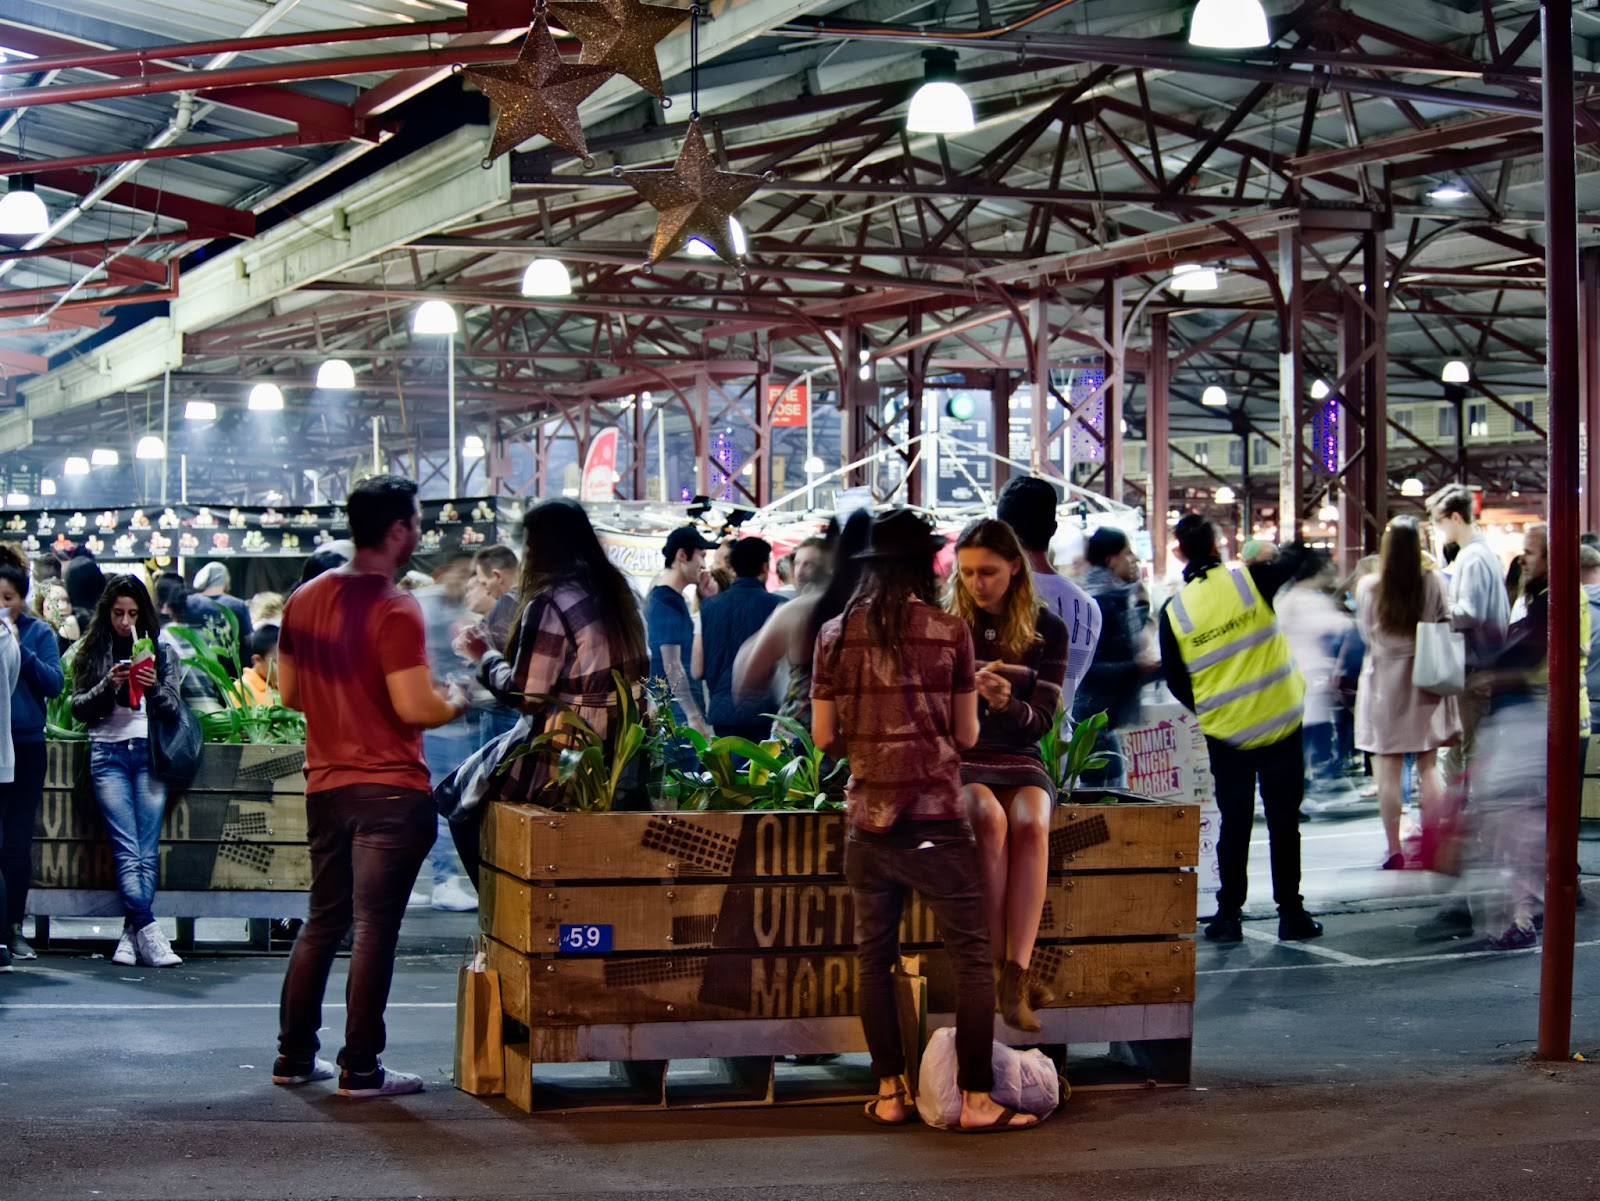 100 things to do in melbourne with kids winter night market queen vic market